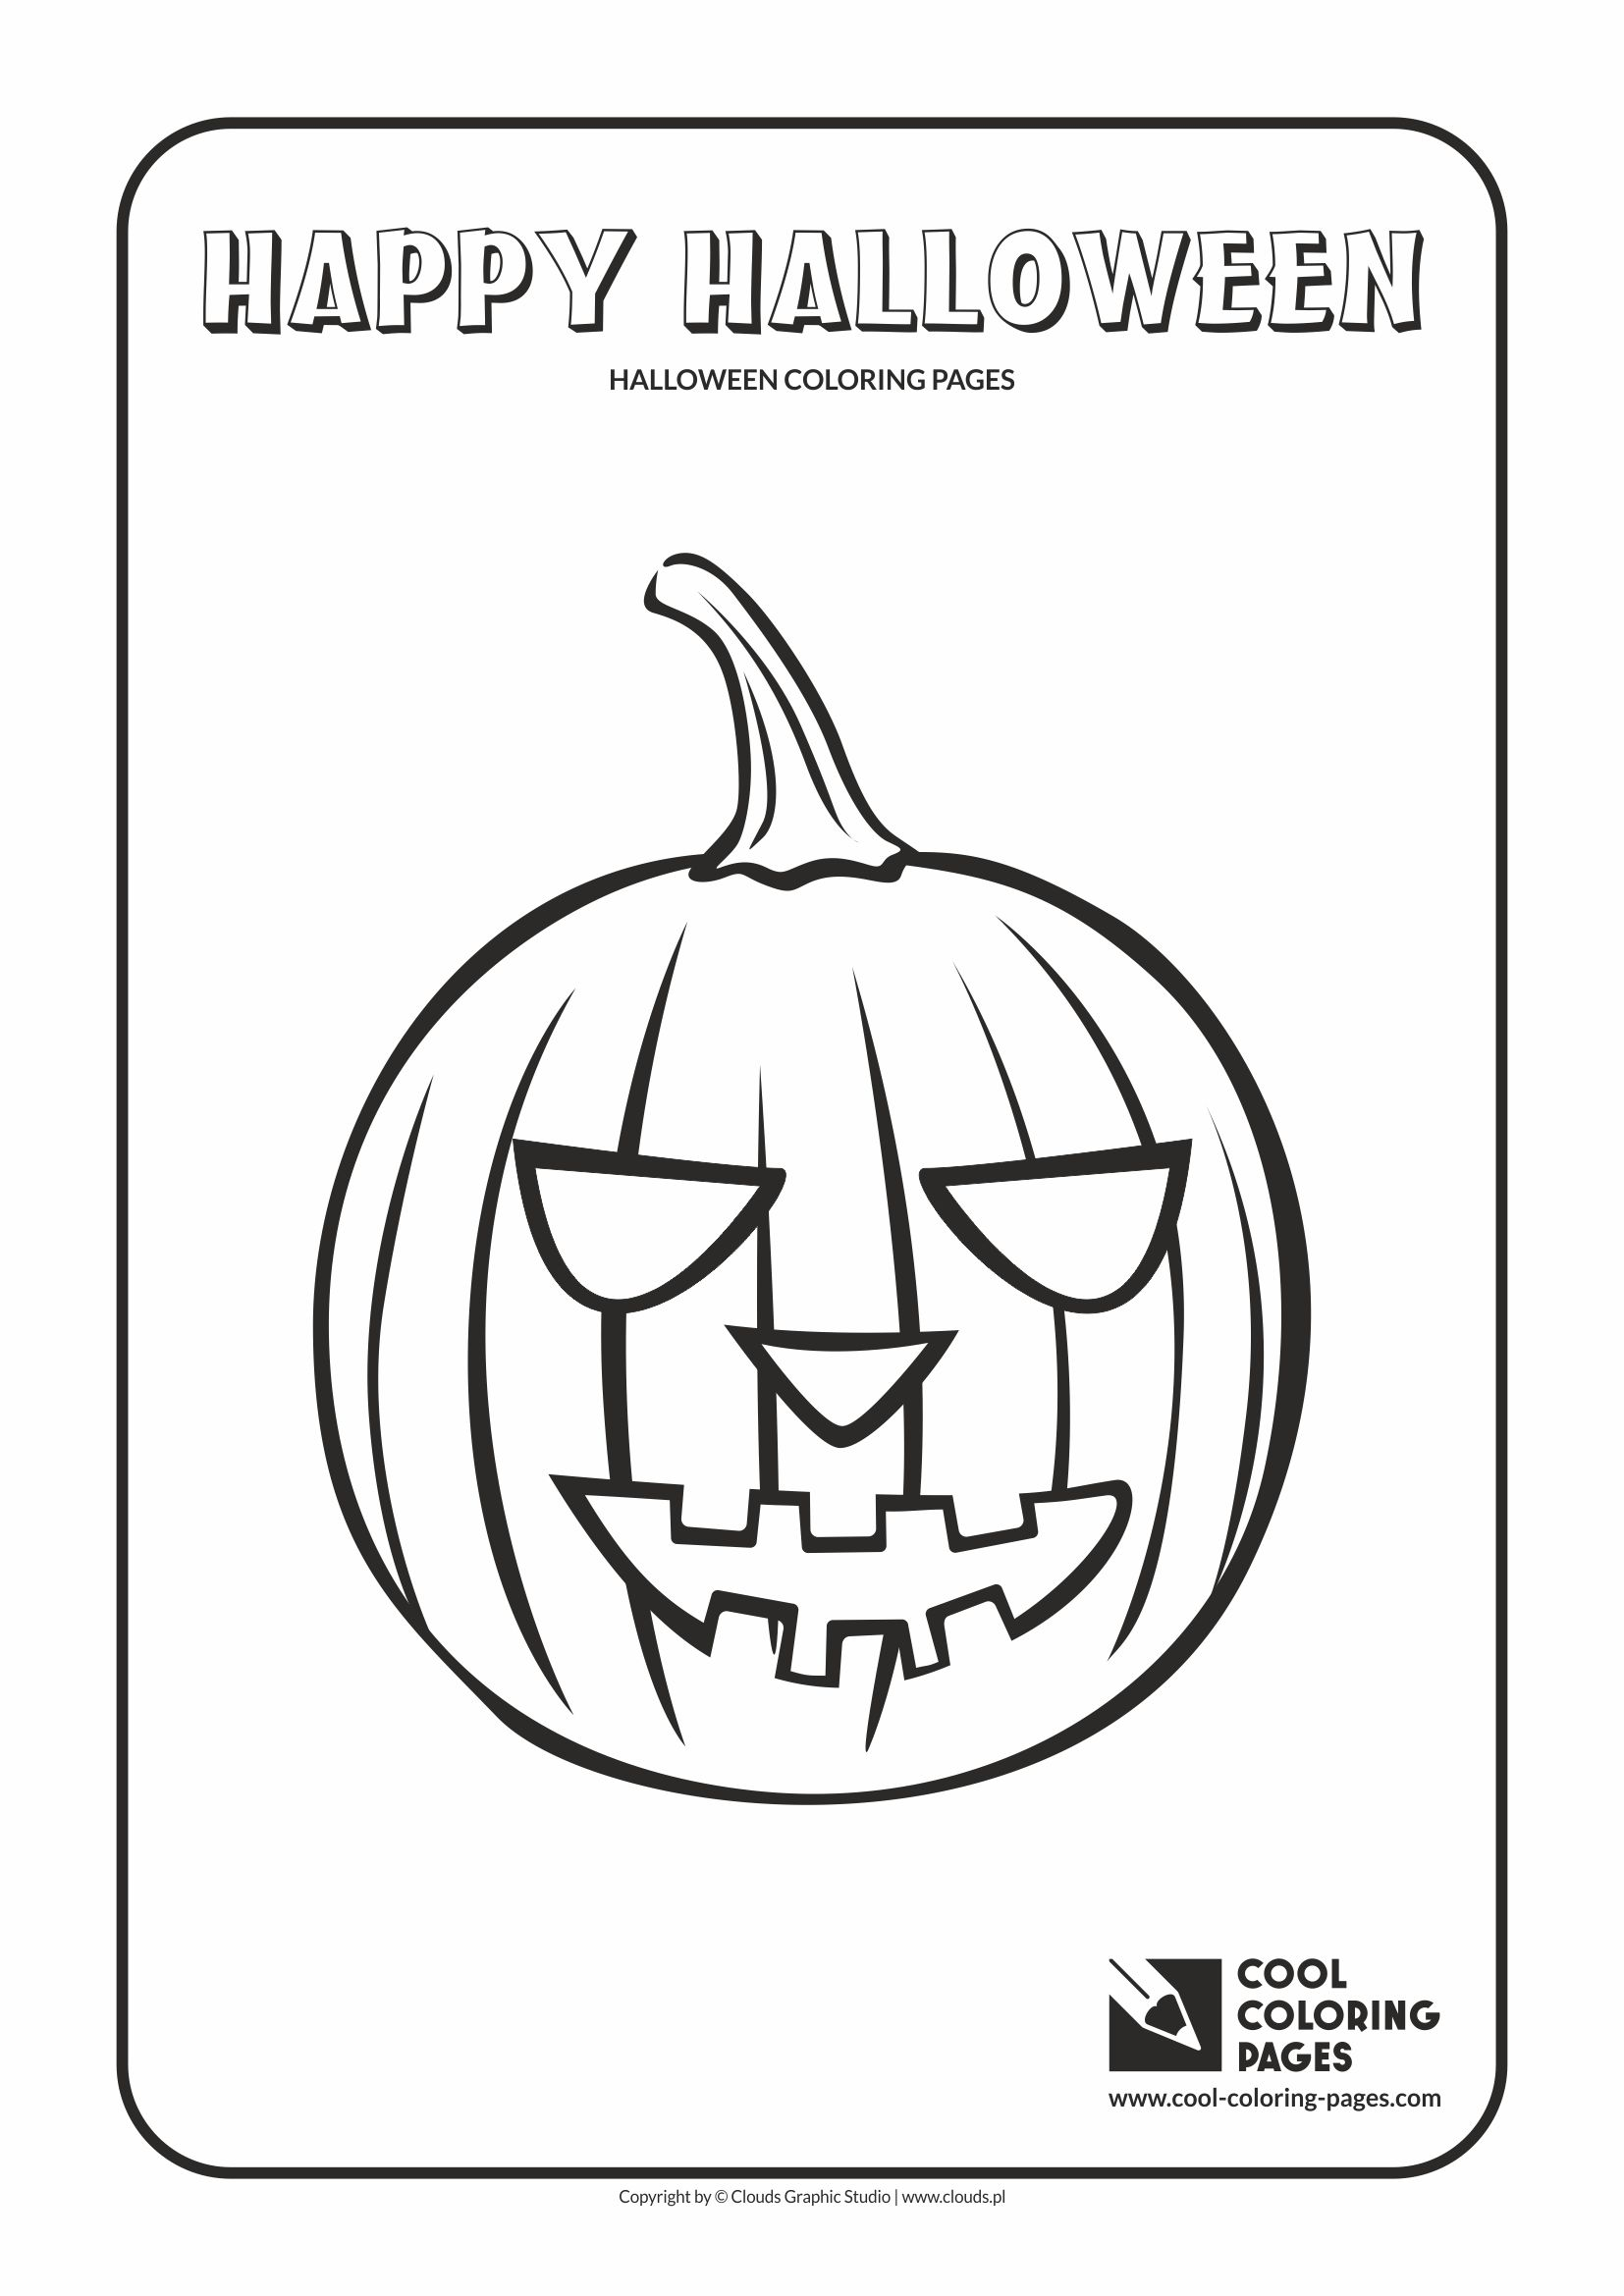 Cool Coloring Pages Halloween coloring